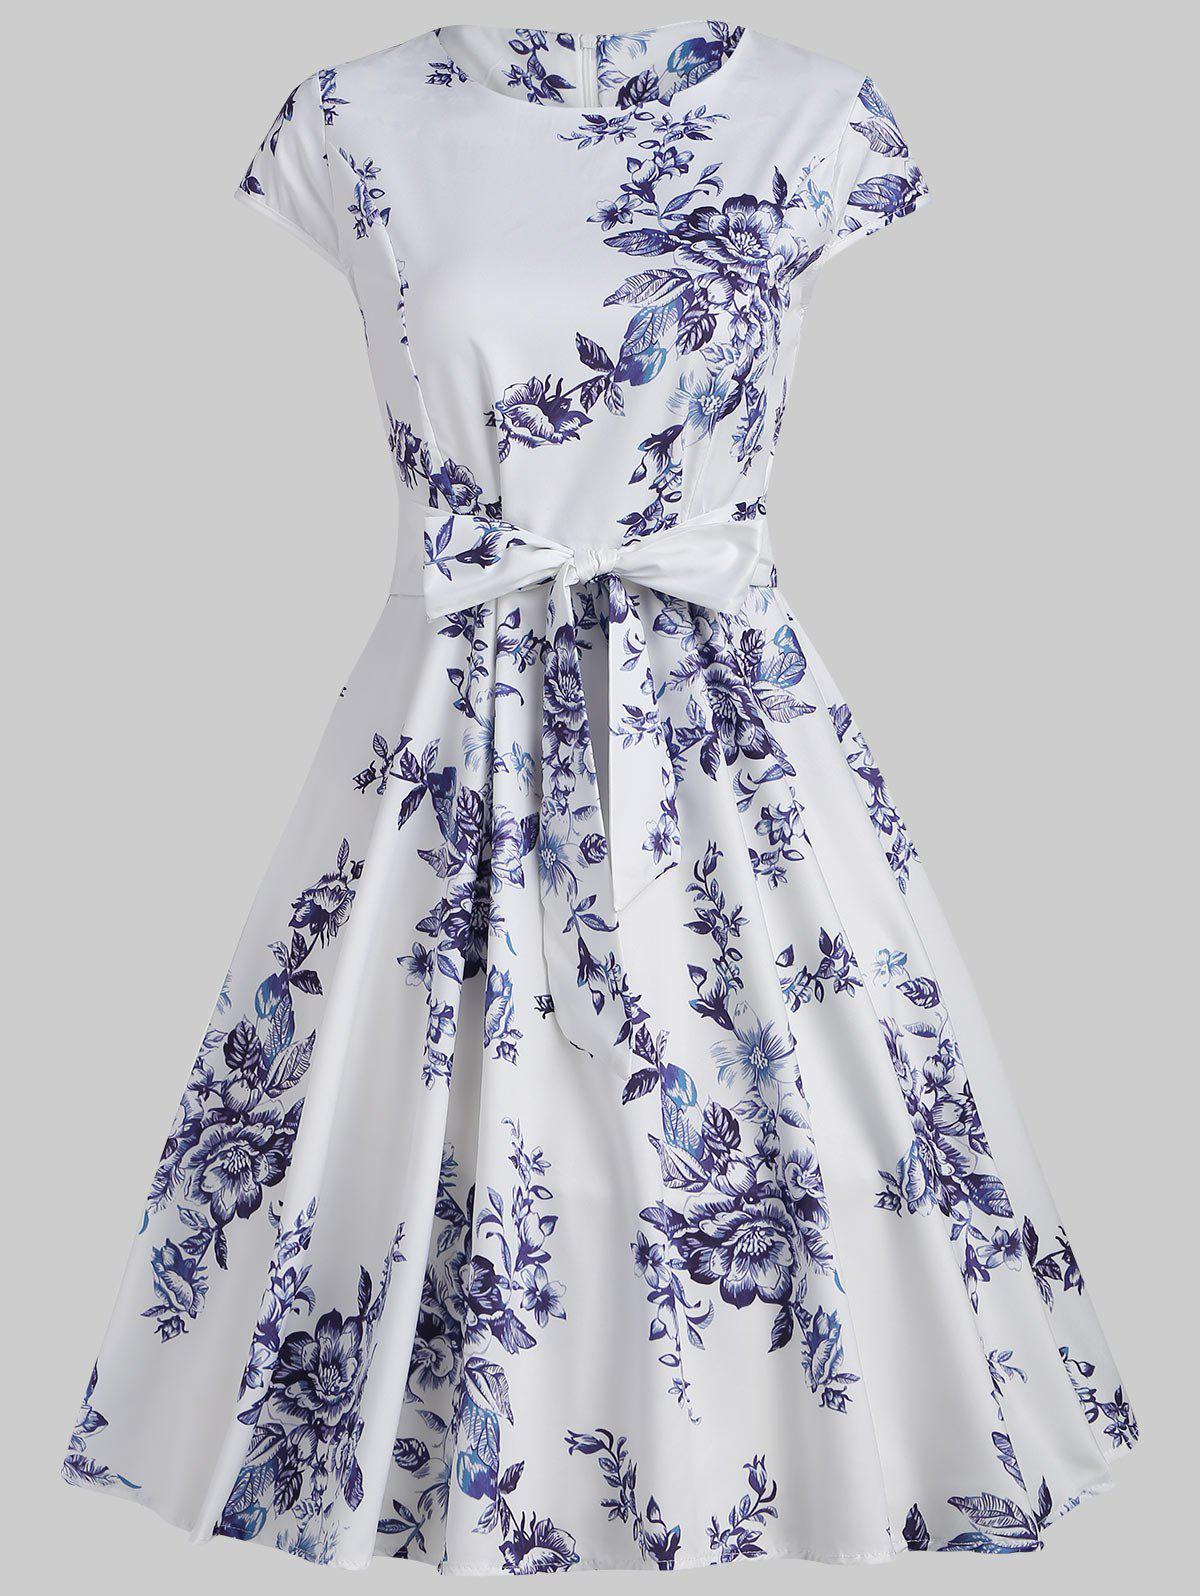 Online Floral Print Cap Sleeve Vintage Dress with Belt